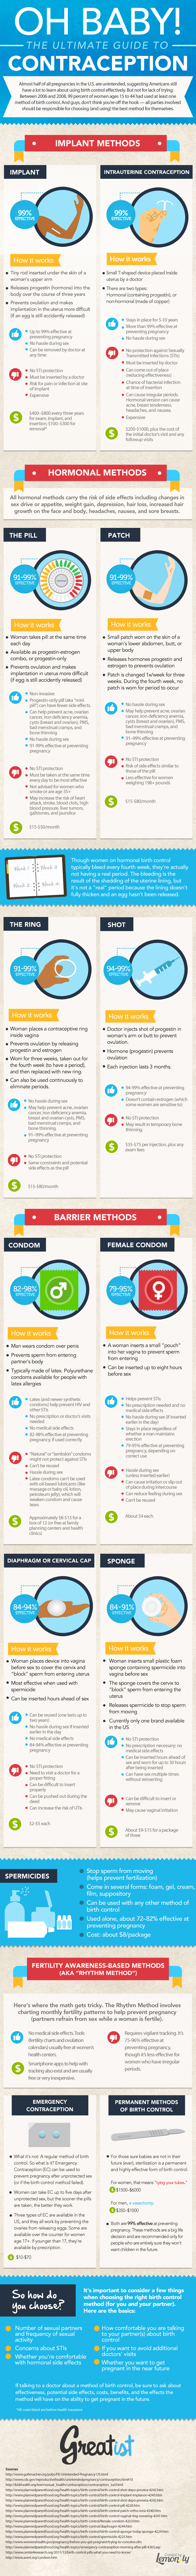 Guide to contraception